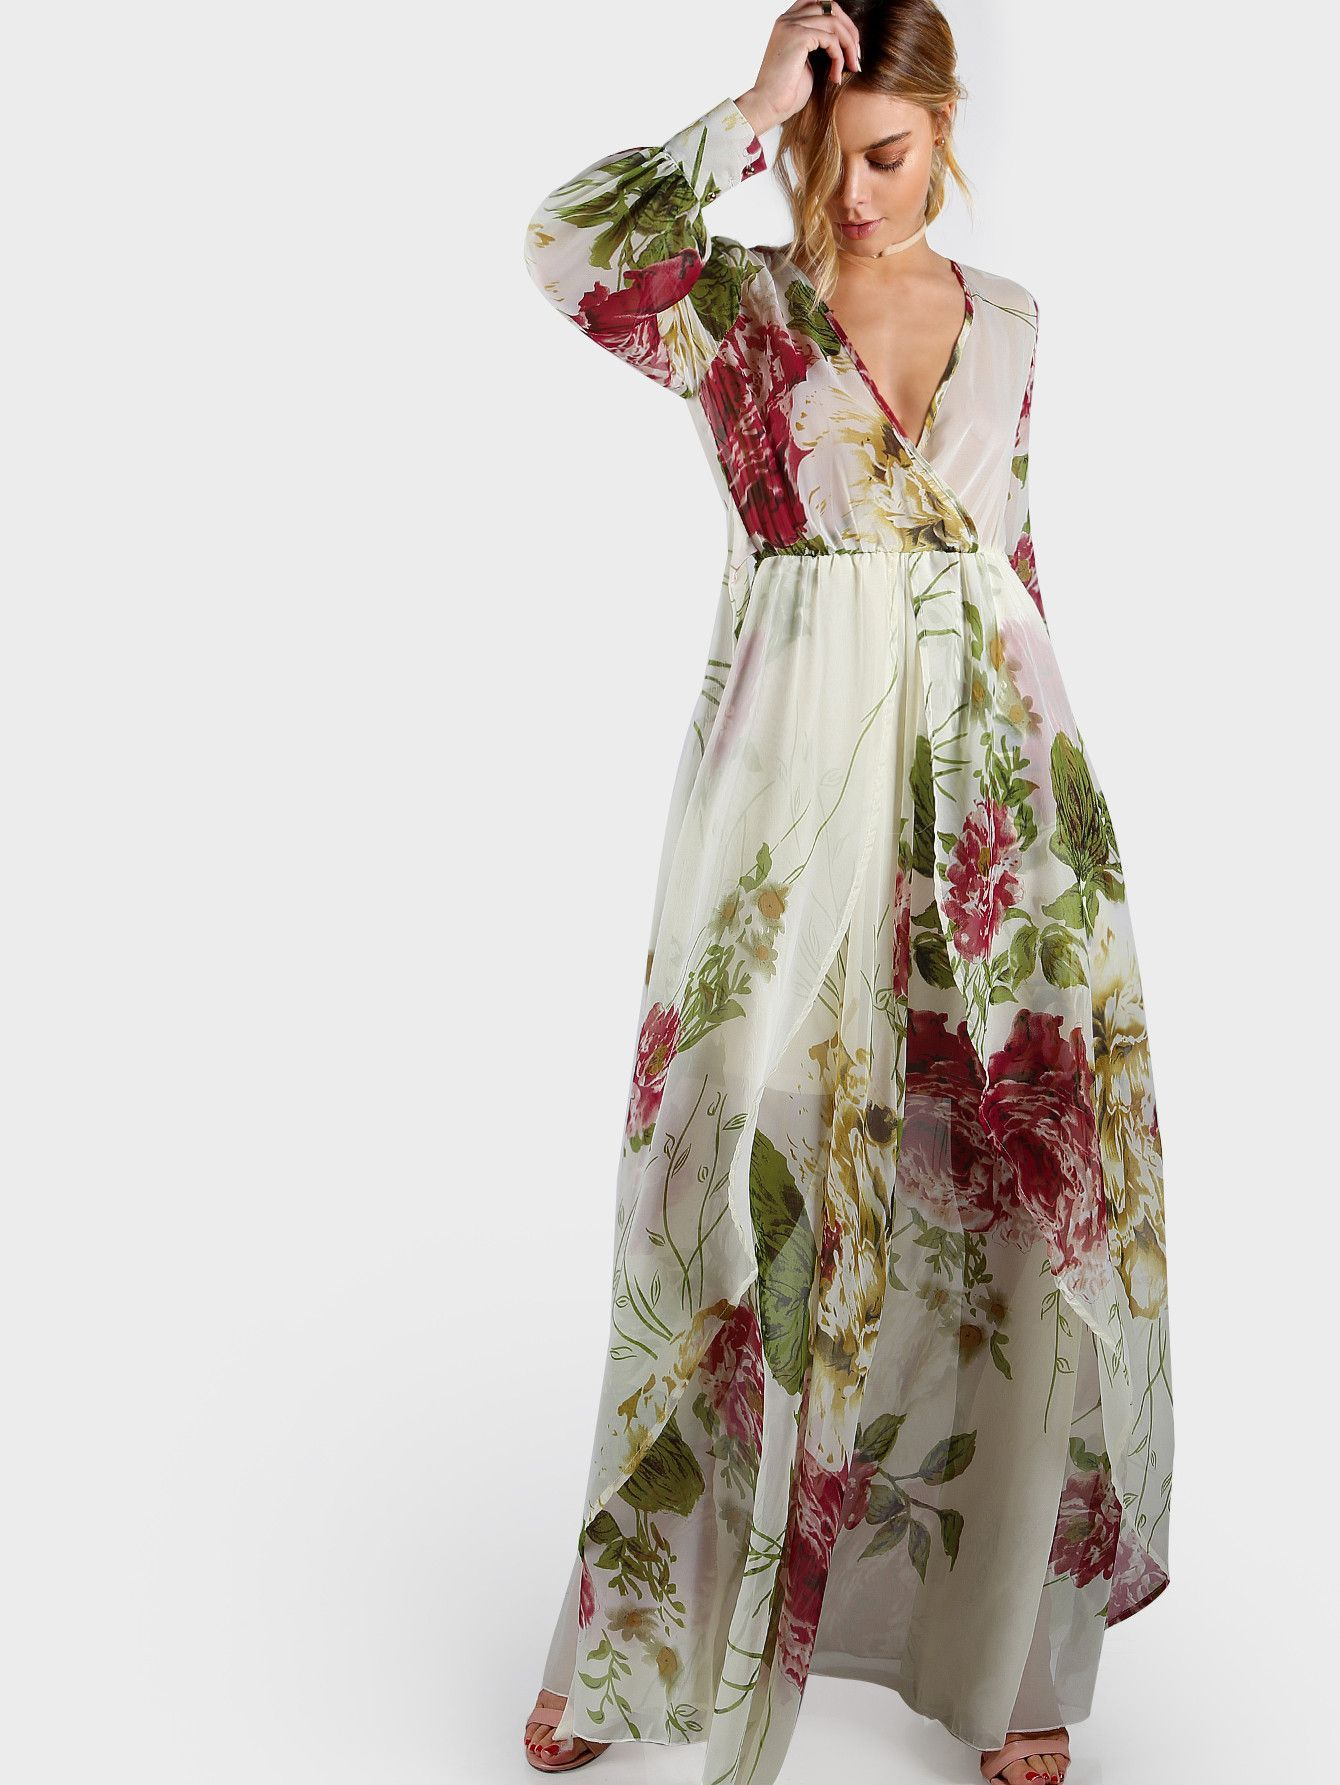 6e56a730332d ... L 21.5cm Fabric  Fabric has no stretch Season  Summer Pattern Type   Floral Sleeve Length  Long Sleeve Color  Multicolor Dresses Length  Maxi  Style  ...